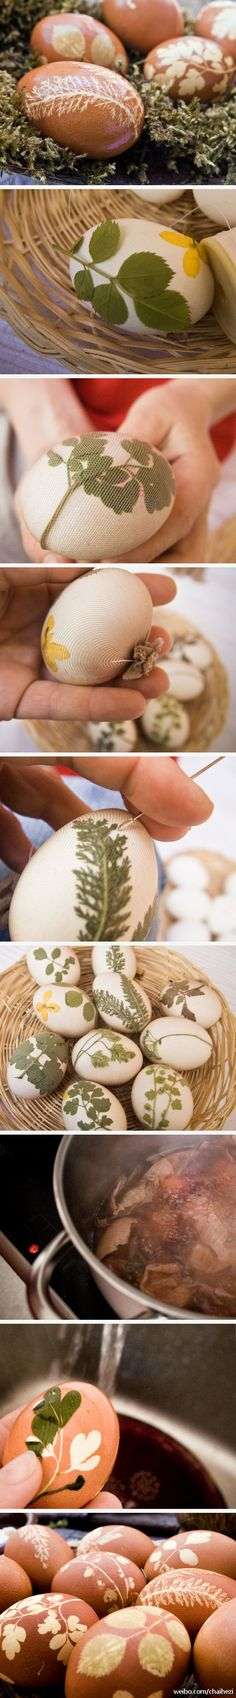 printing eggs with leaves